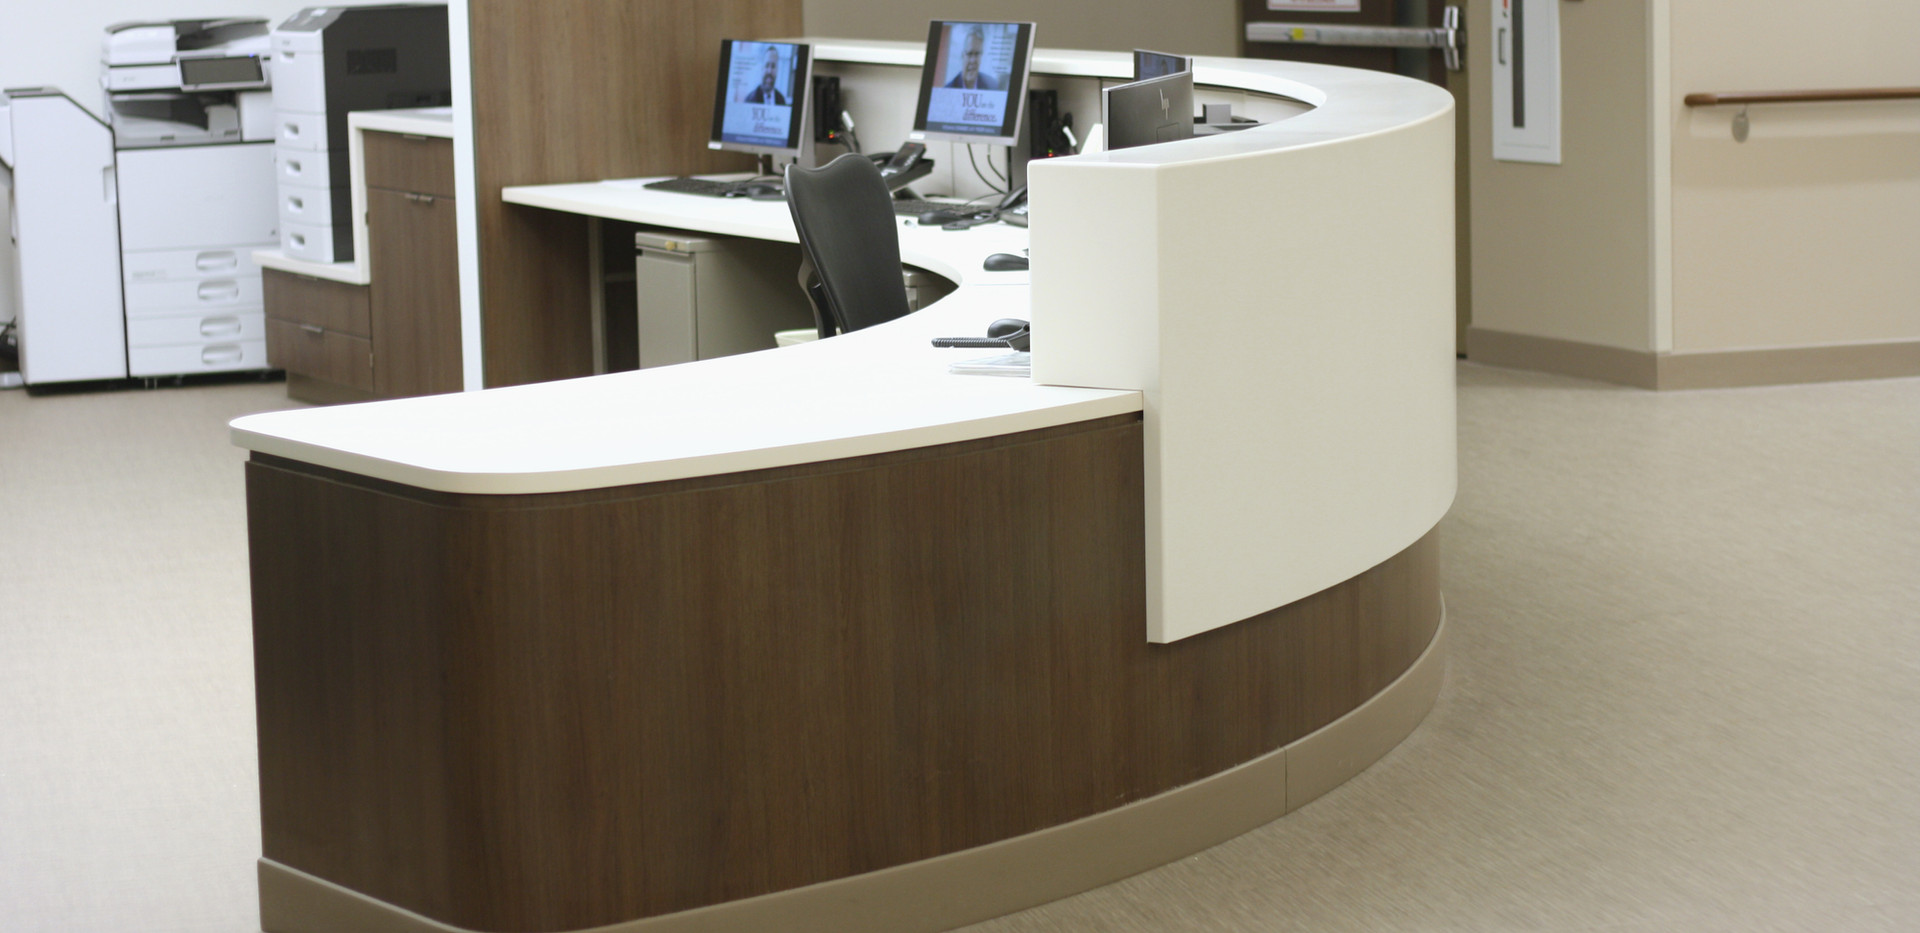 reception_desk_corian_stainless8.JPG